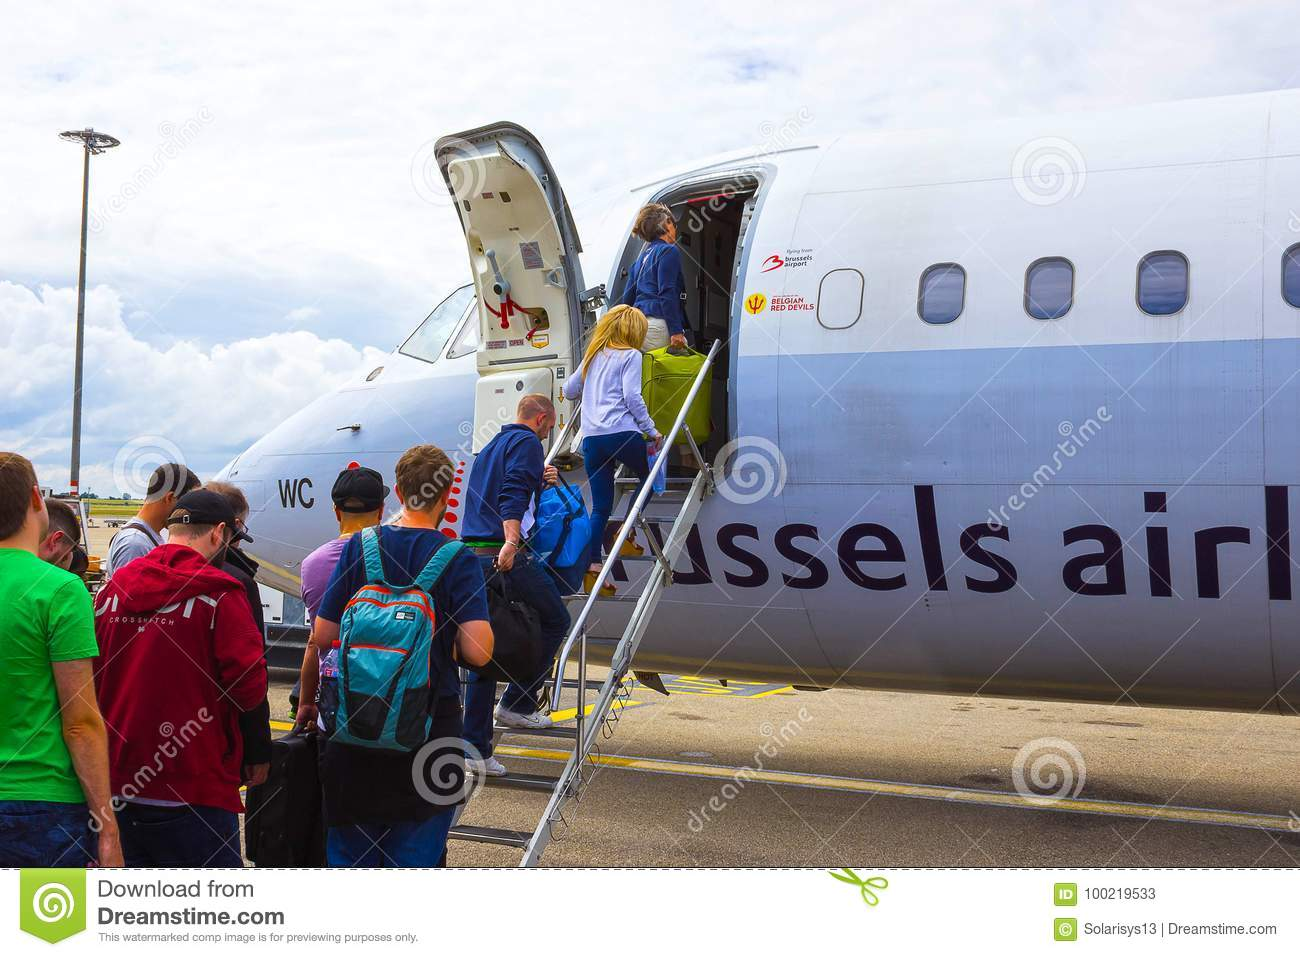 Brussels, Belgium - June 19, 2016: The people boarding the Brussels Airline aircraft. Passenger walking to the rear